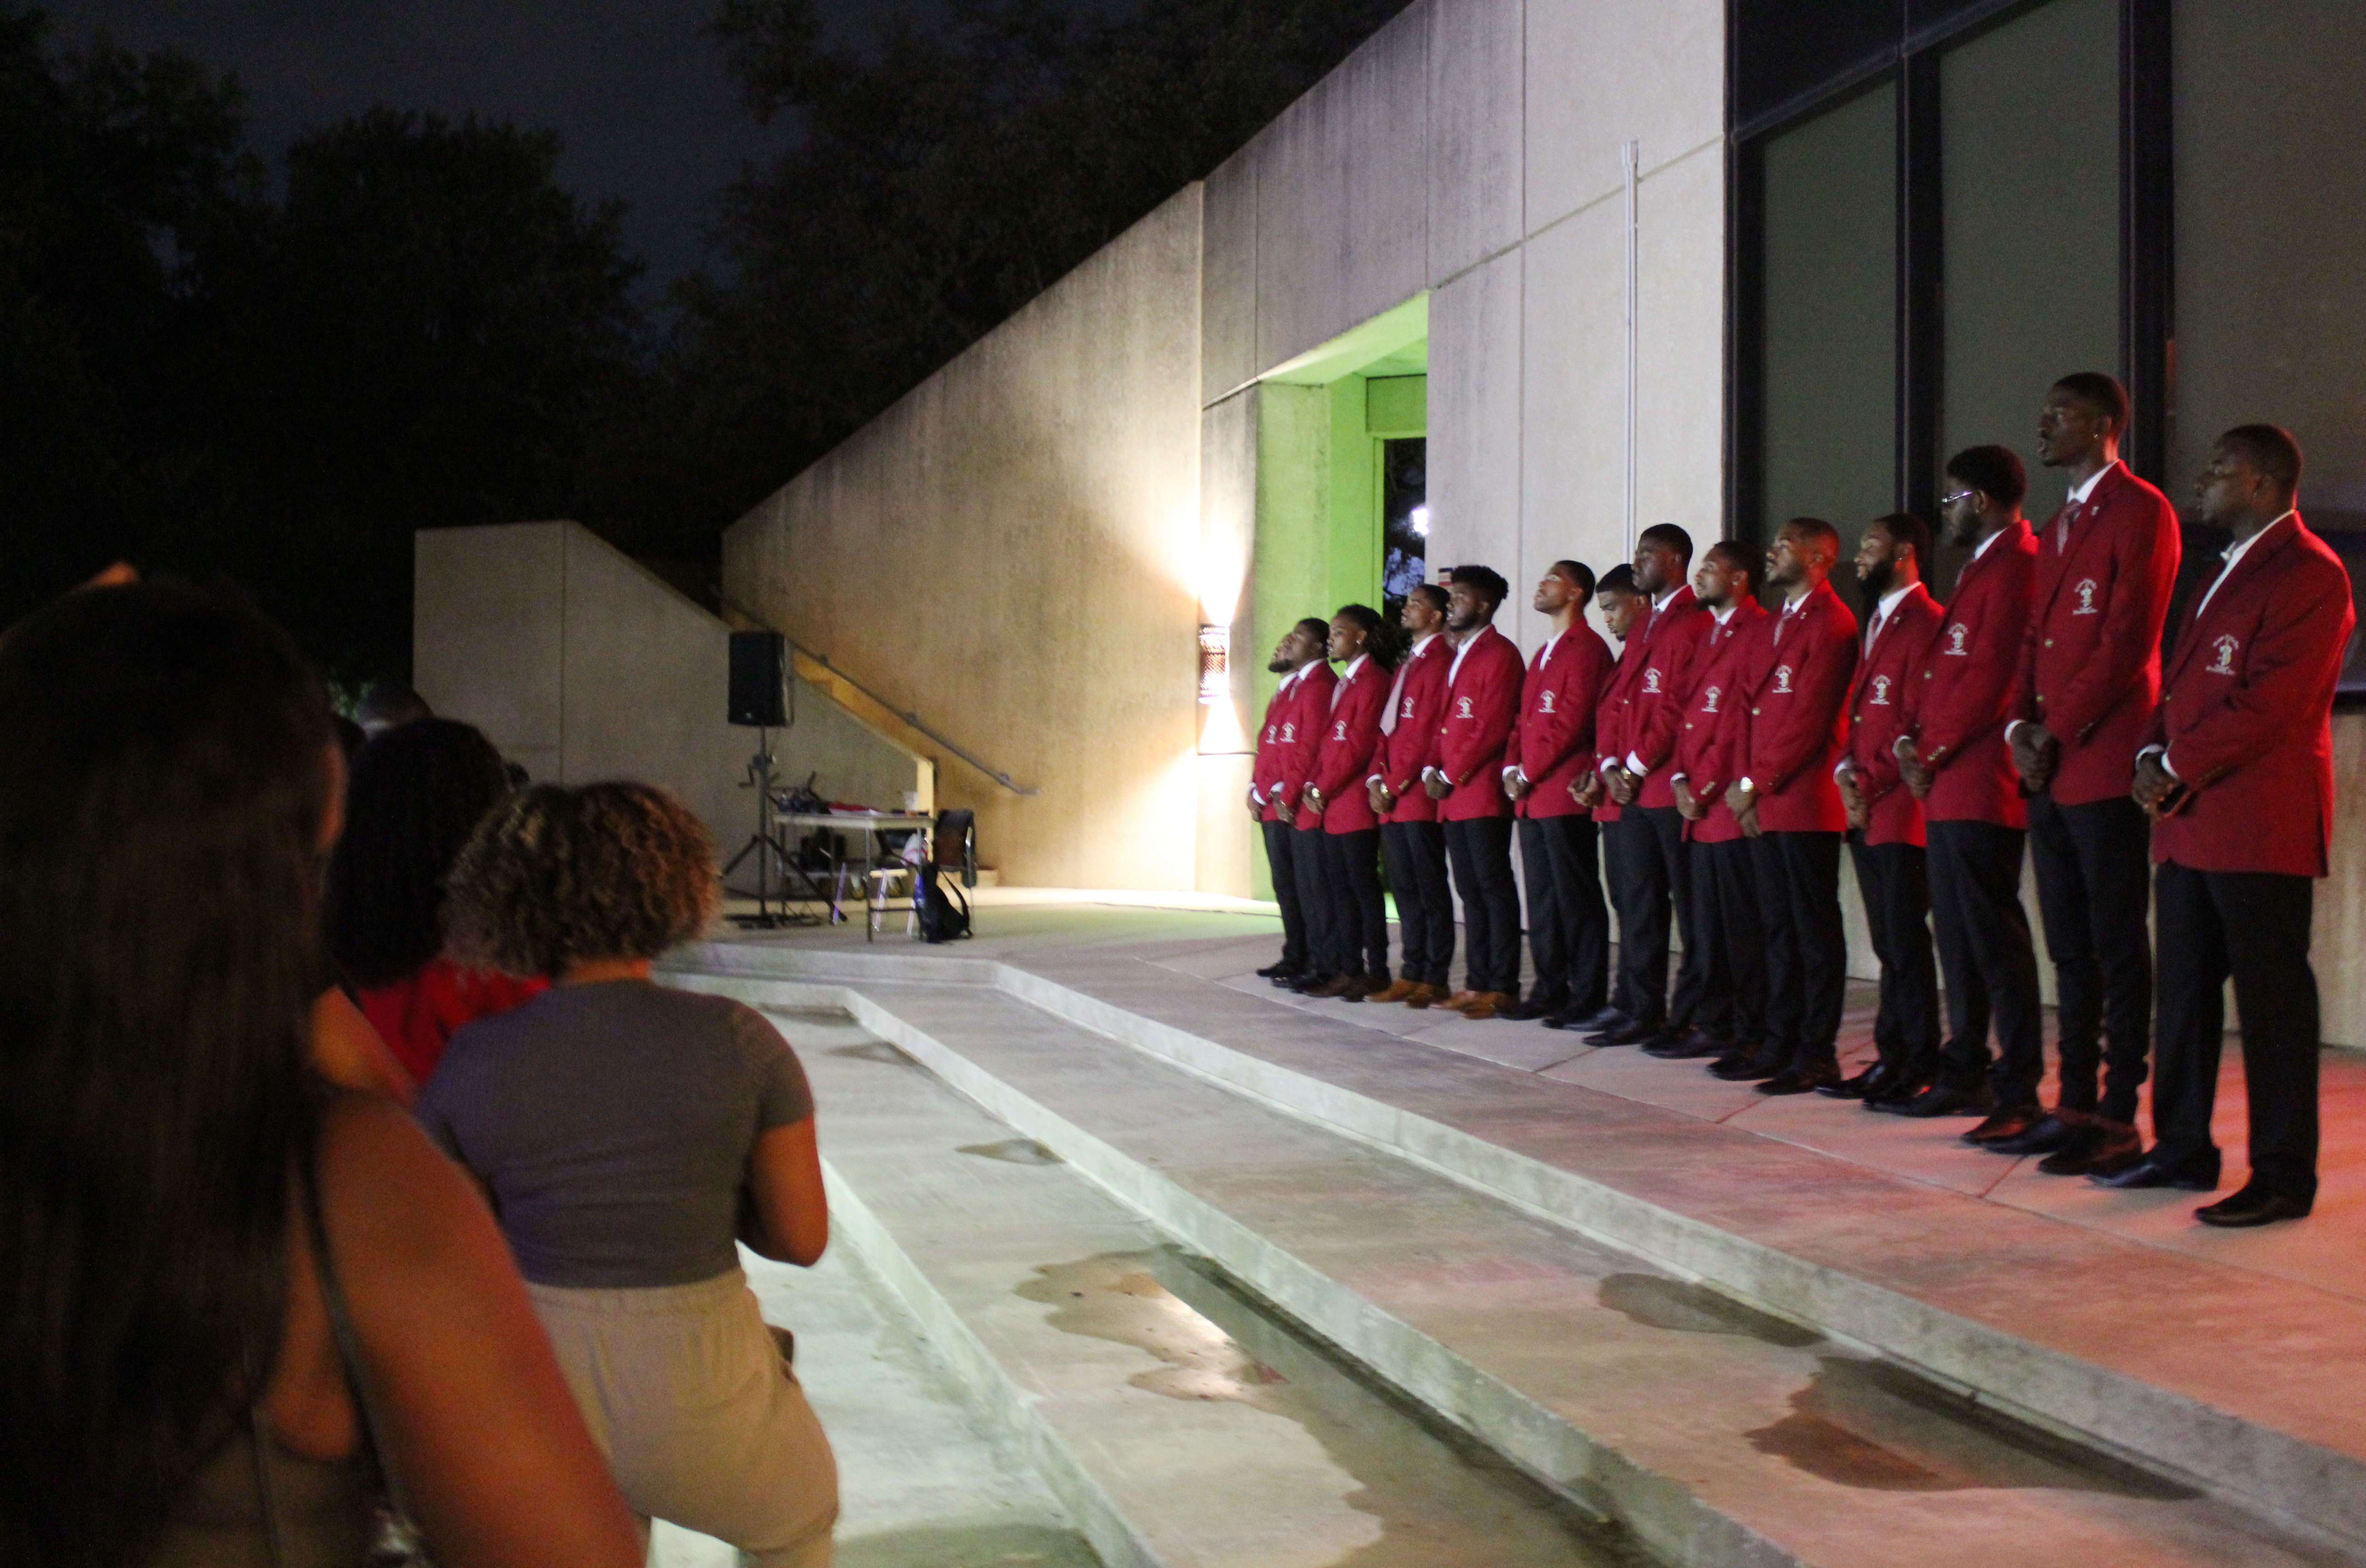 Kappa Alpha Psi choir members